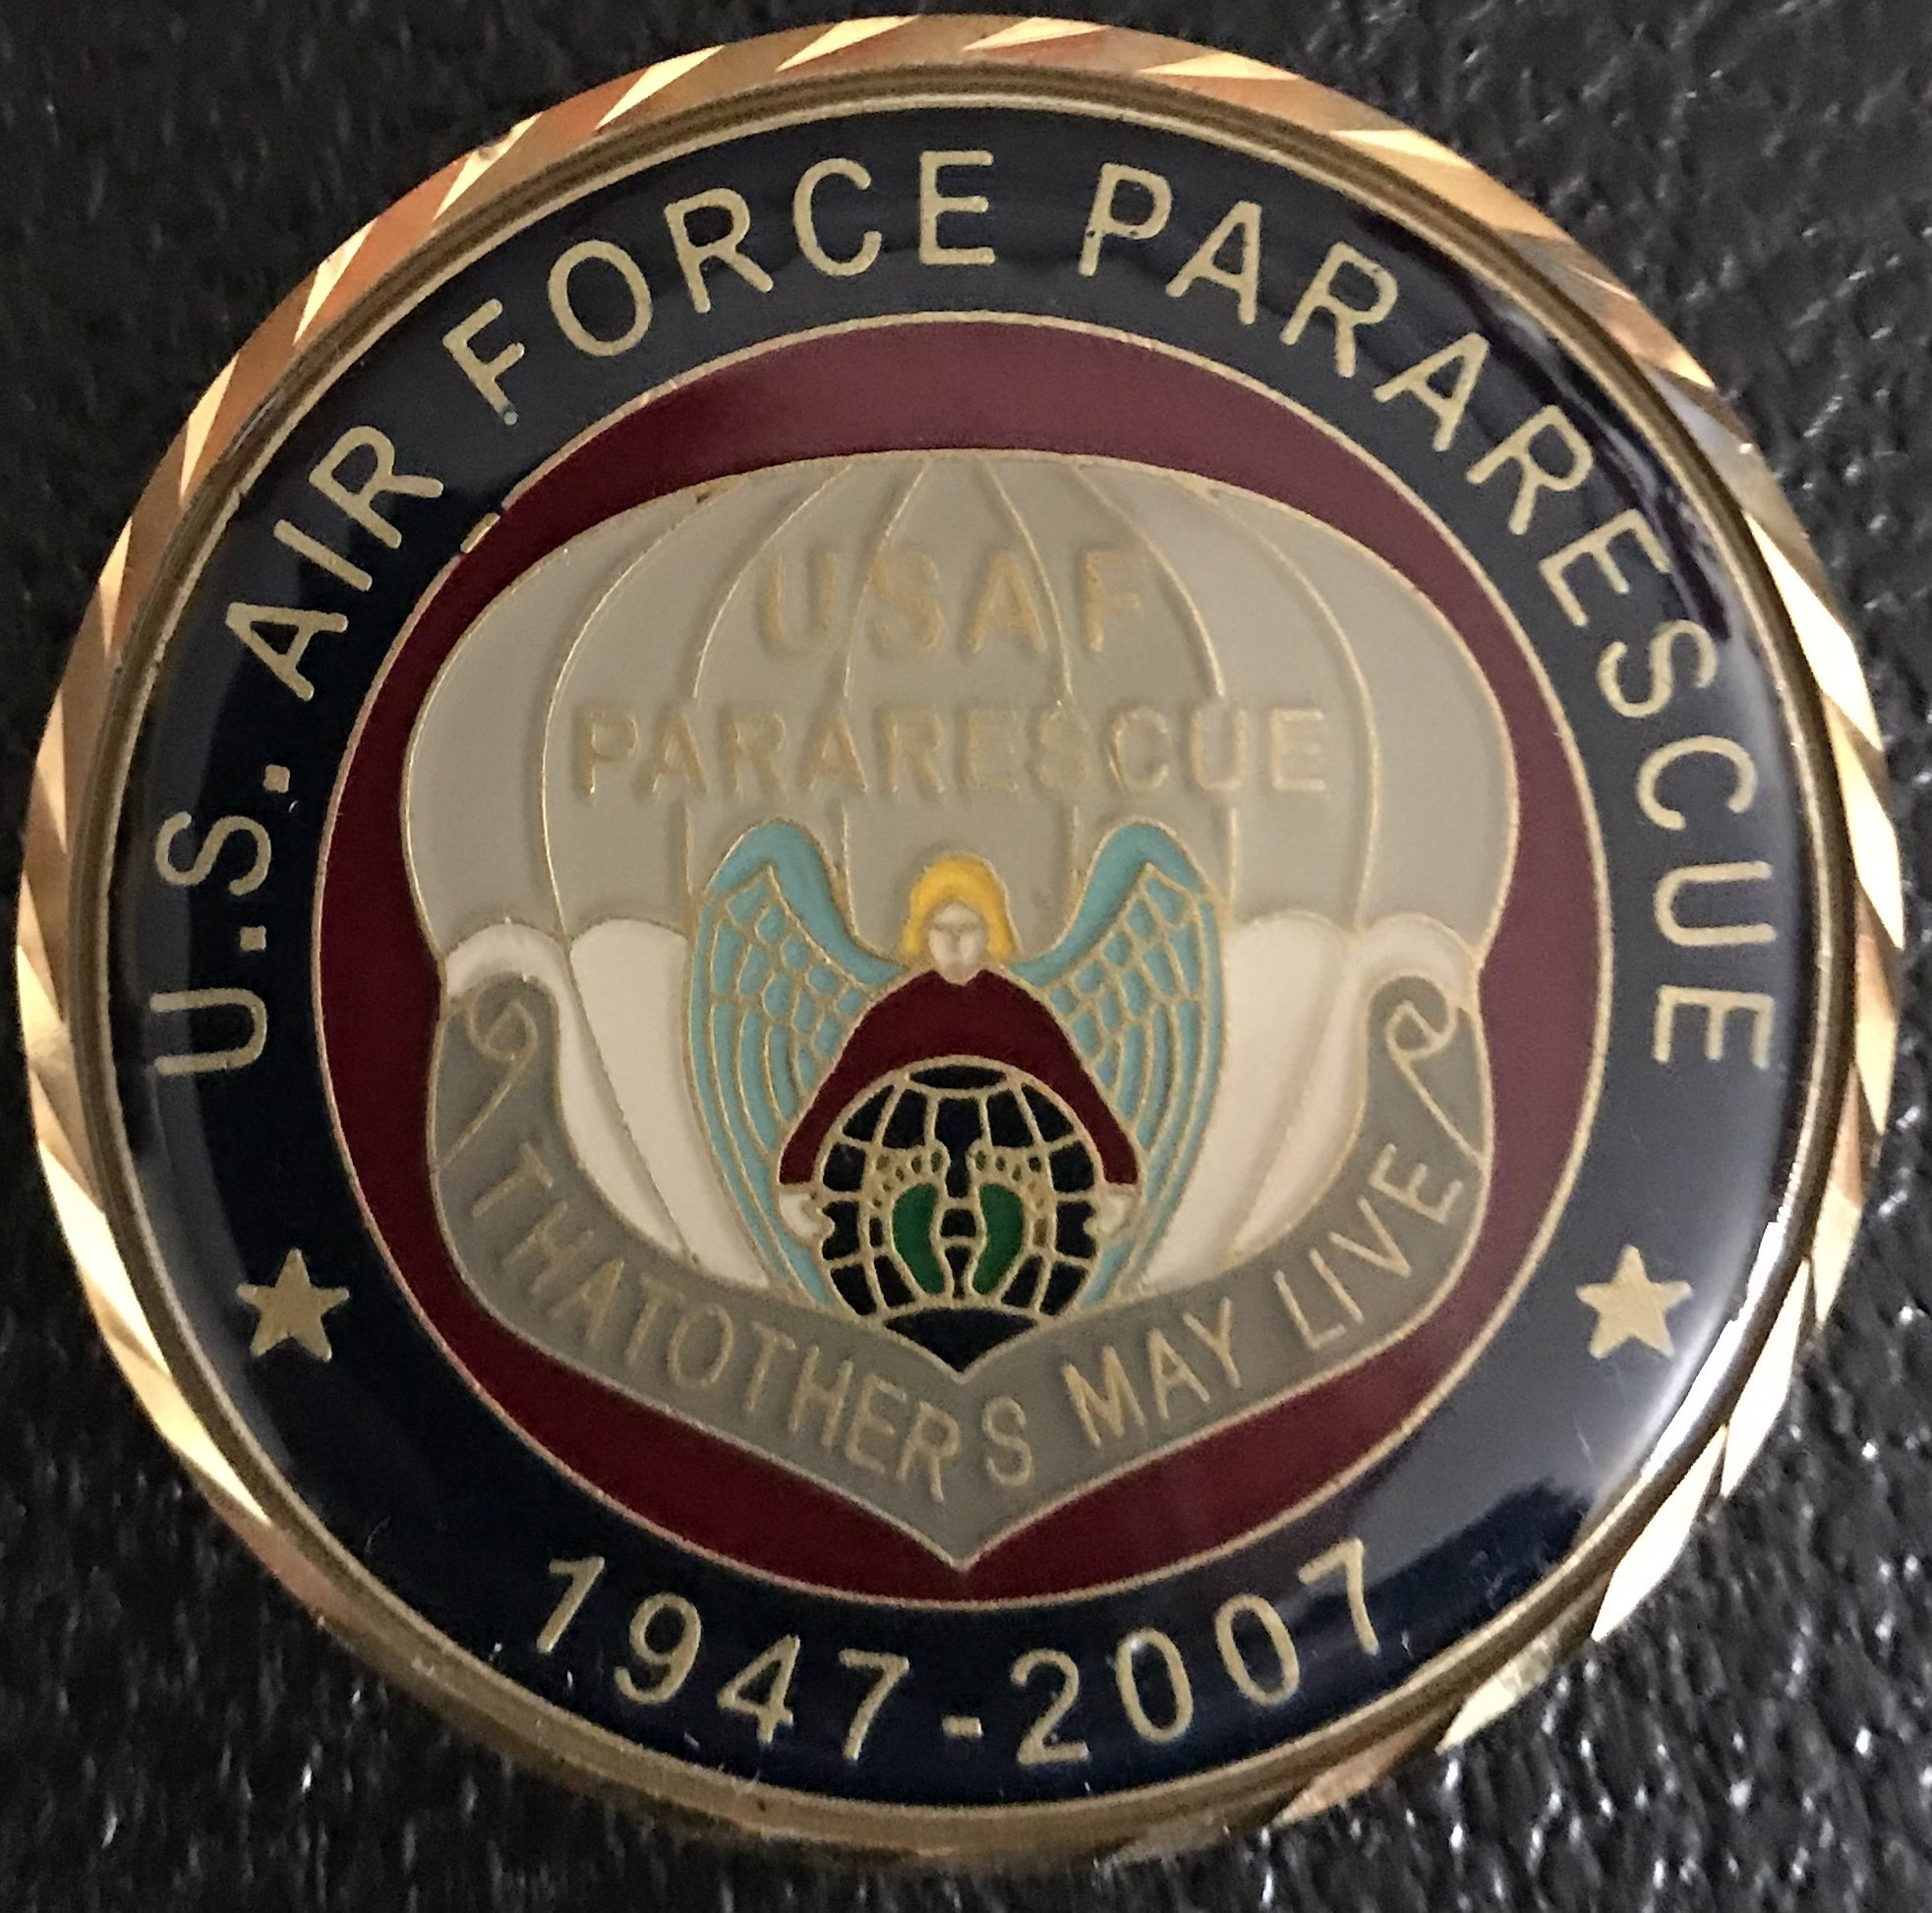 pja/ 60th Year ParaRescue Challenge Coin 01-0035